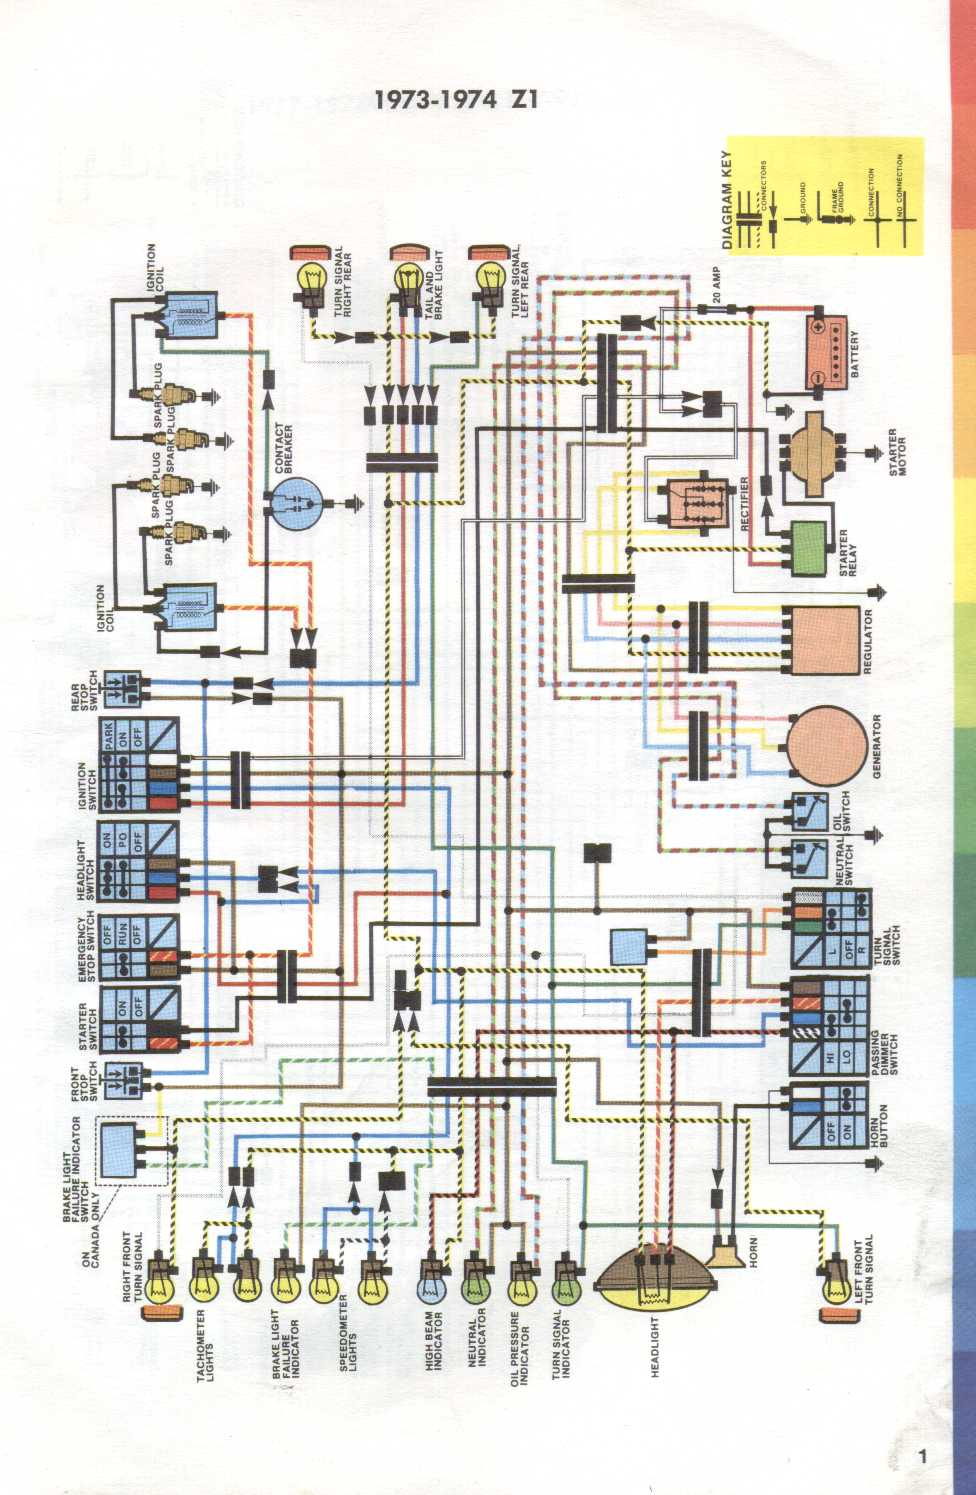 1980 Kawasaki Ke100 Wiring Diagram Trusted Wiring Diagram 1979 DT 250 Wiring  Diagram 1976 Kawasaki Ke100 Wiring Diagram